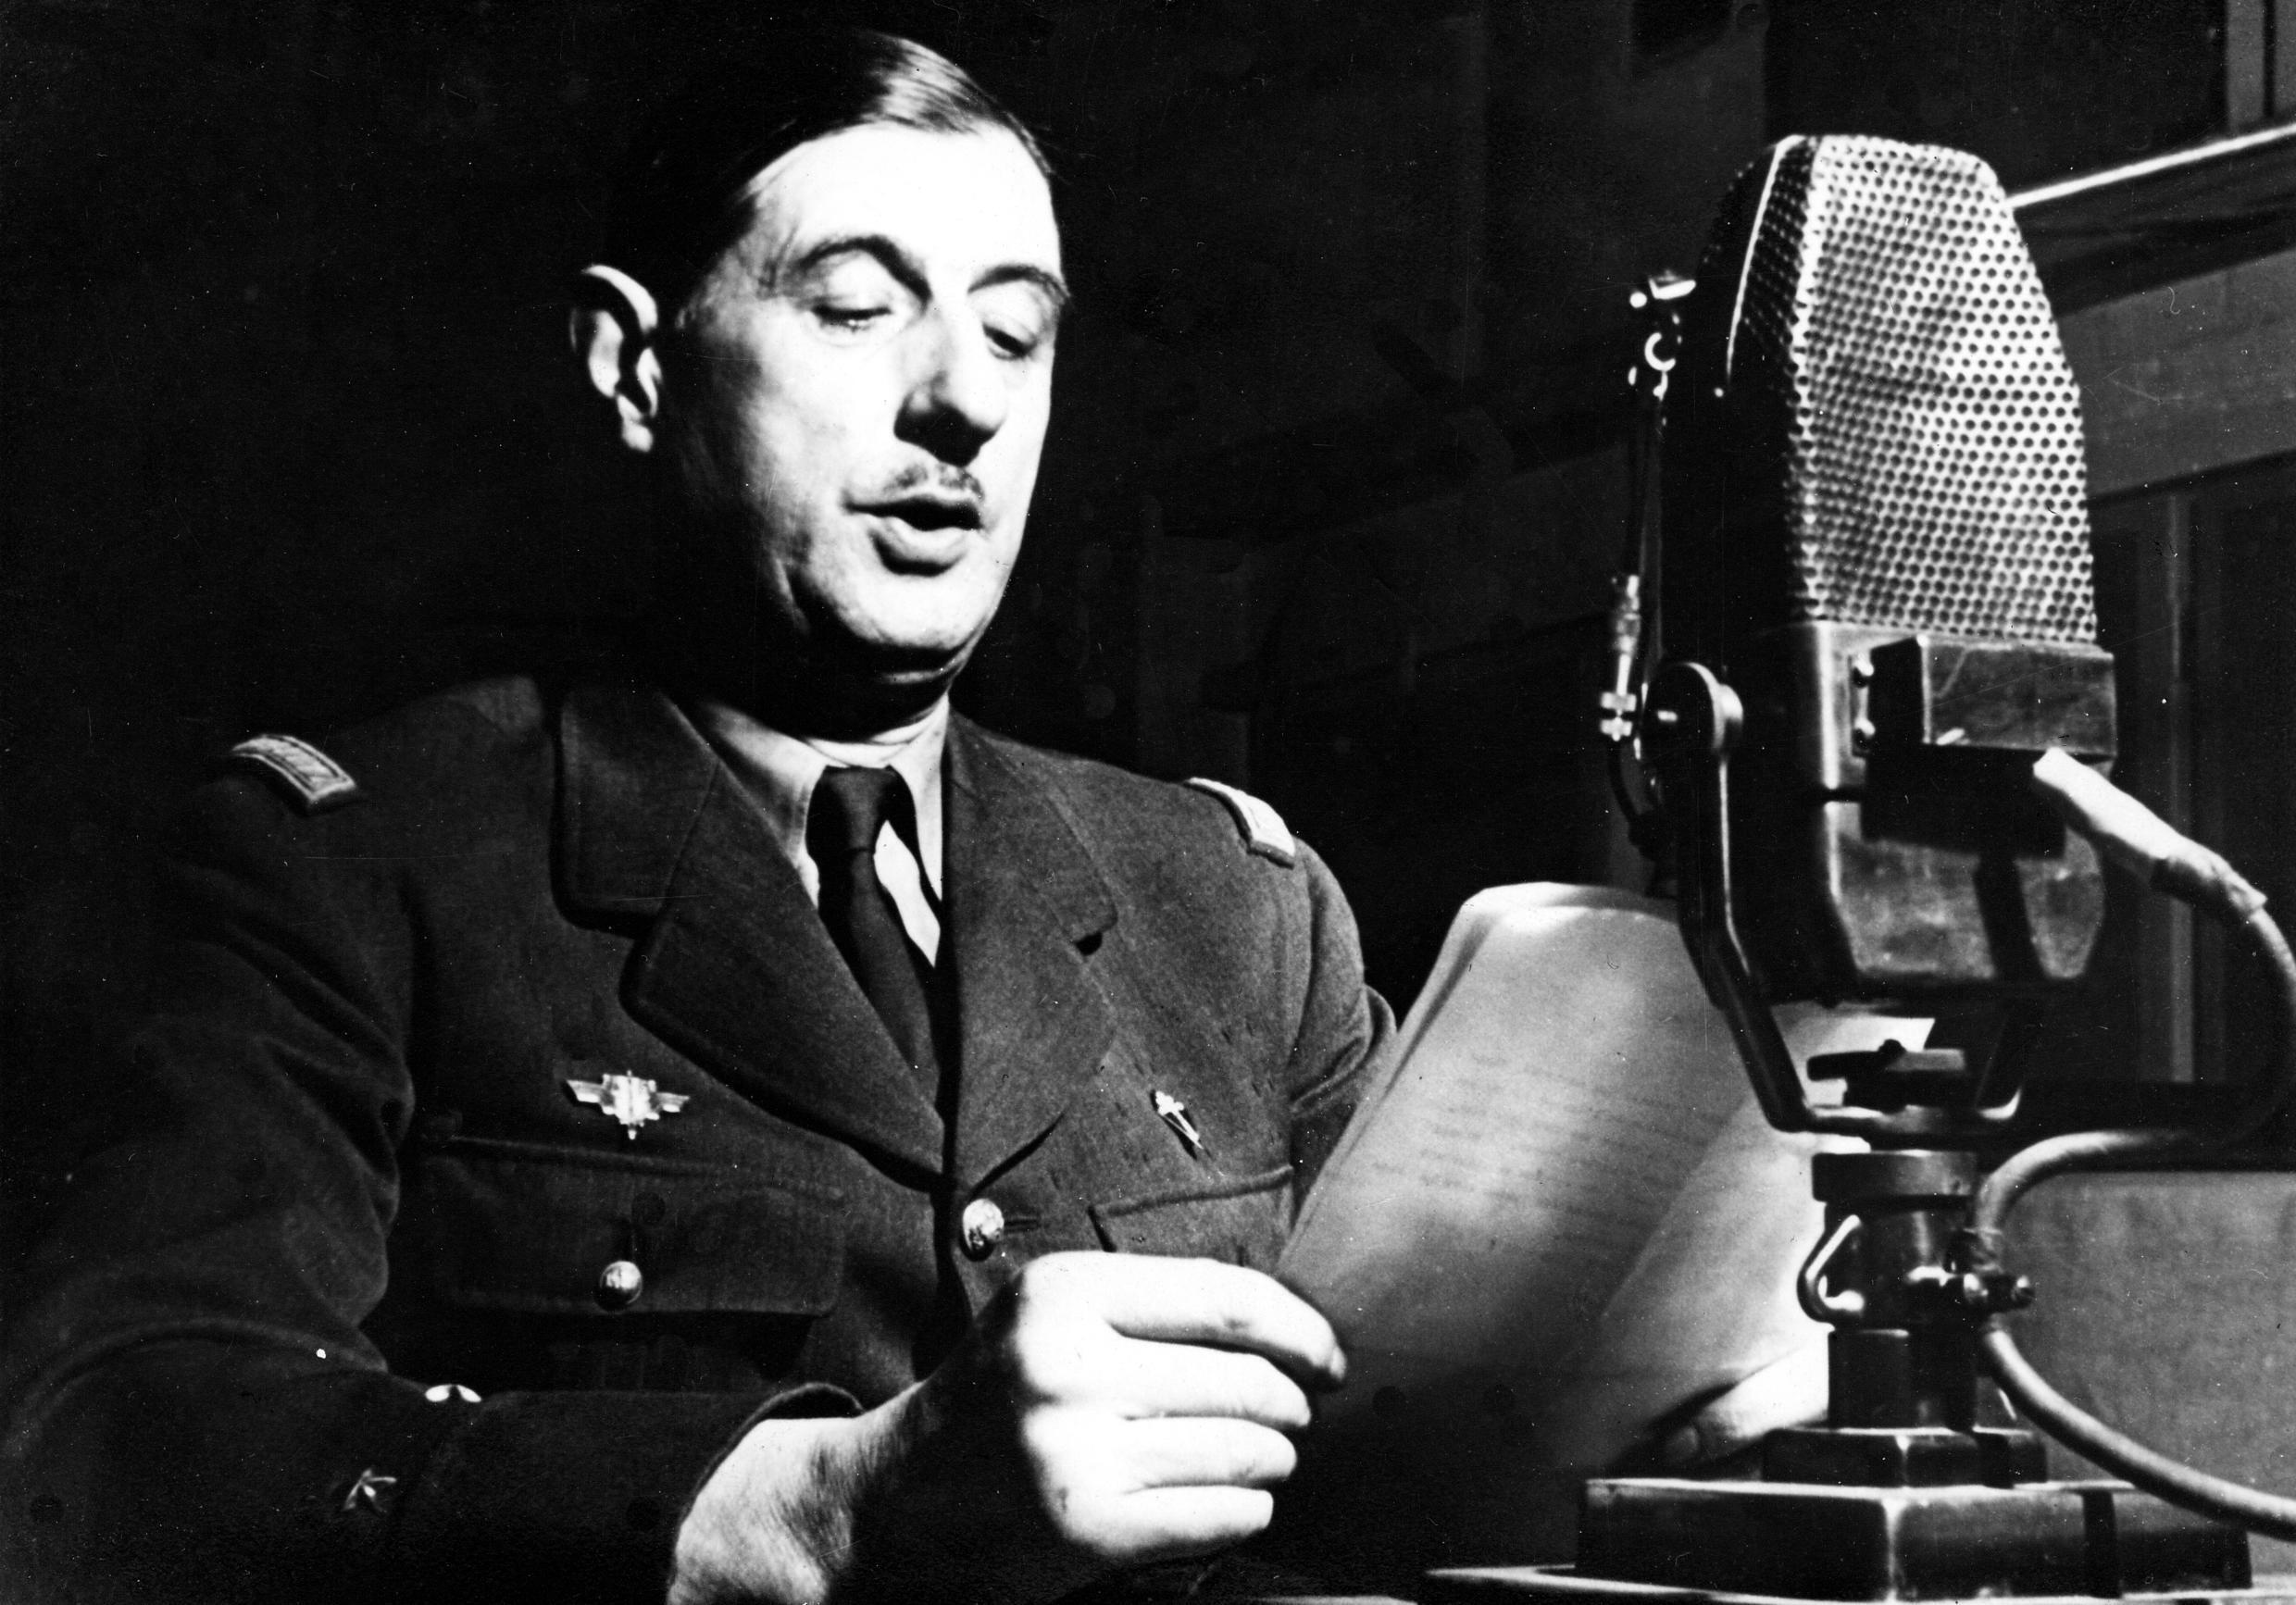 General Charles de Gaulle at the BBC in October 1941.